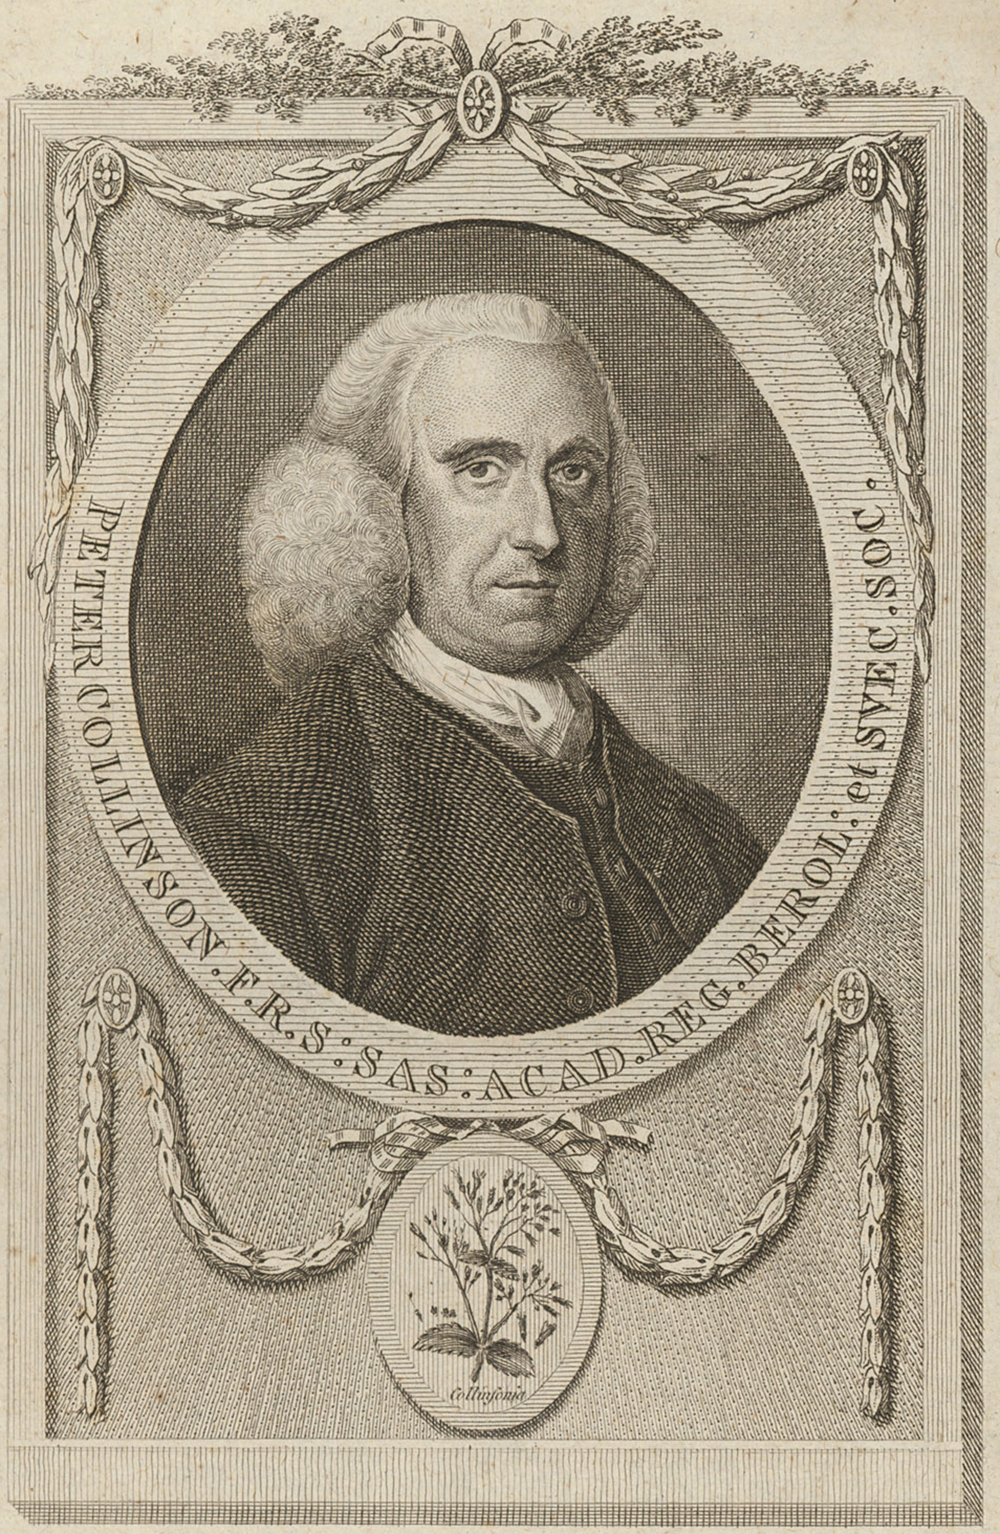 Peter Collinson, by T. Trotter, eighteenth century.